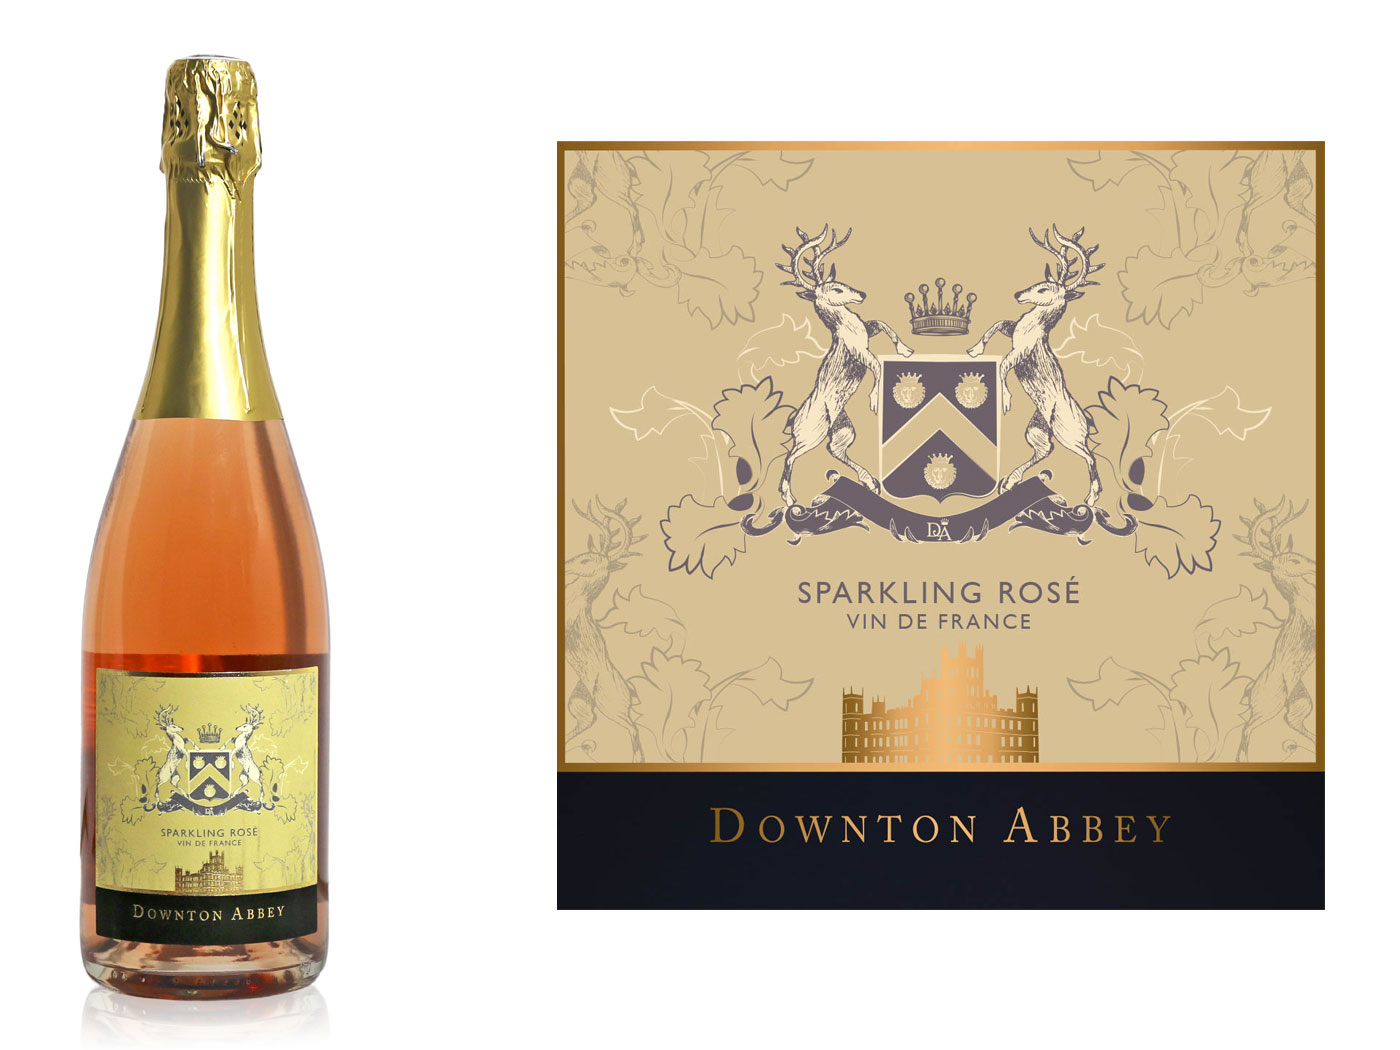 downton-abbey-movie-rose-wine-FT-BLOG0919.jpg